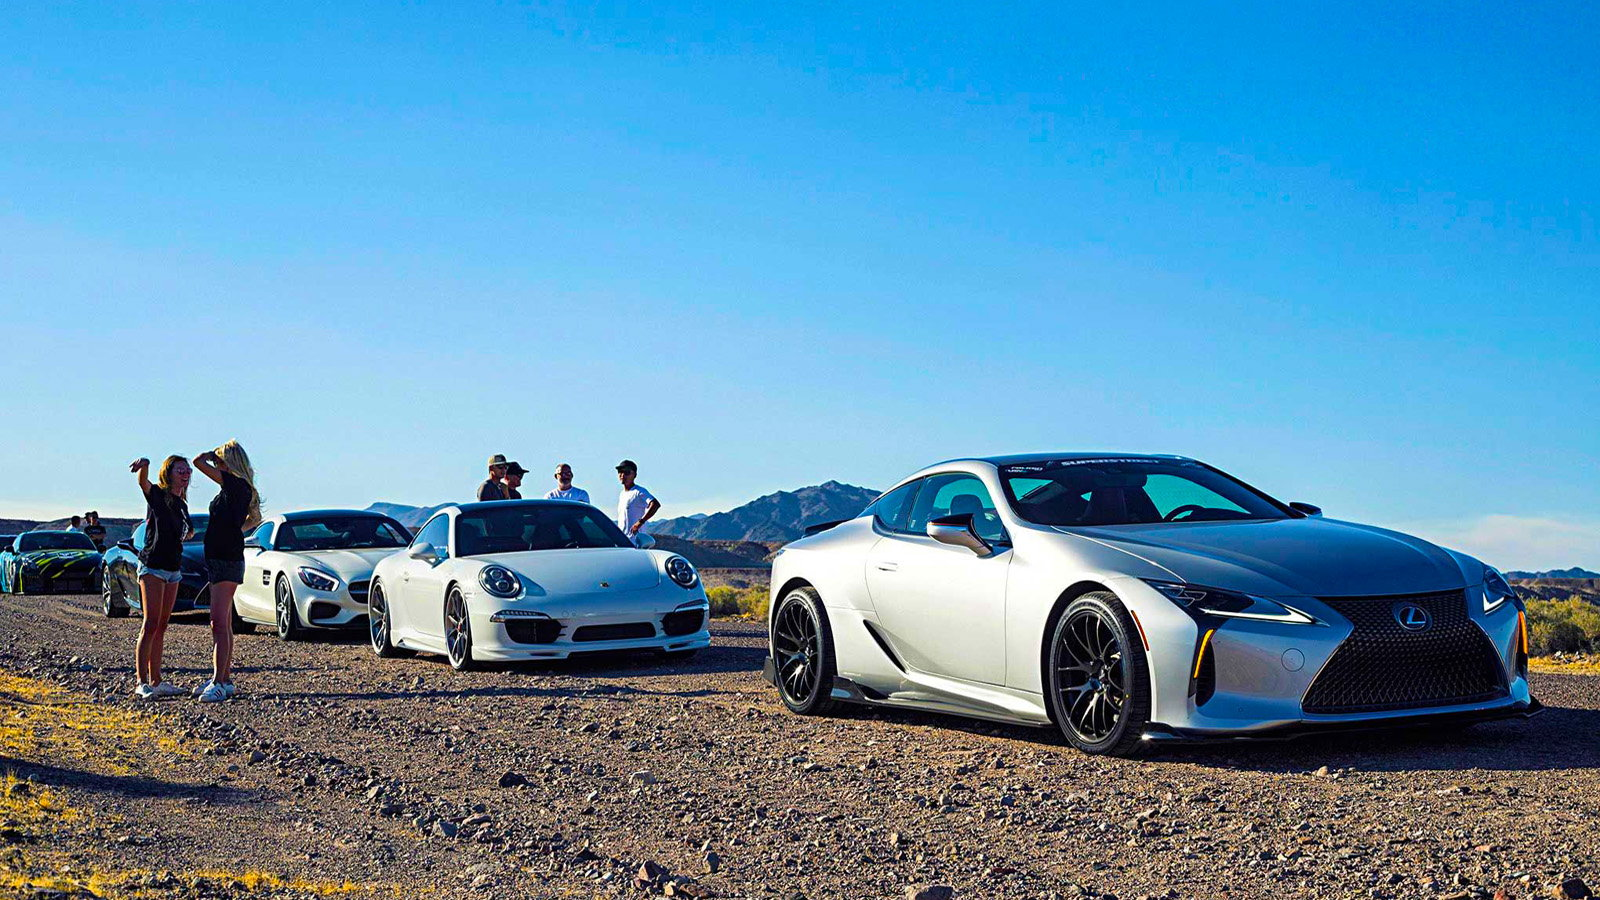 LC500 Takes part in the Targa Trophy Rally